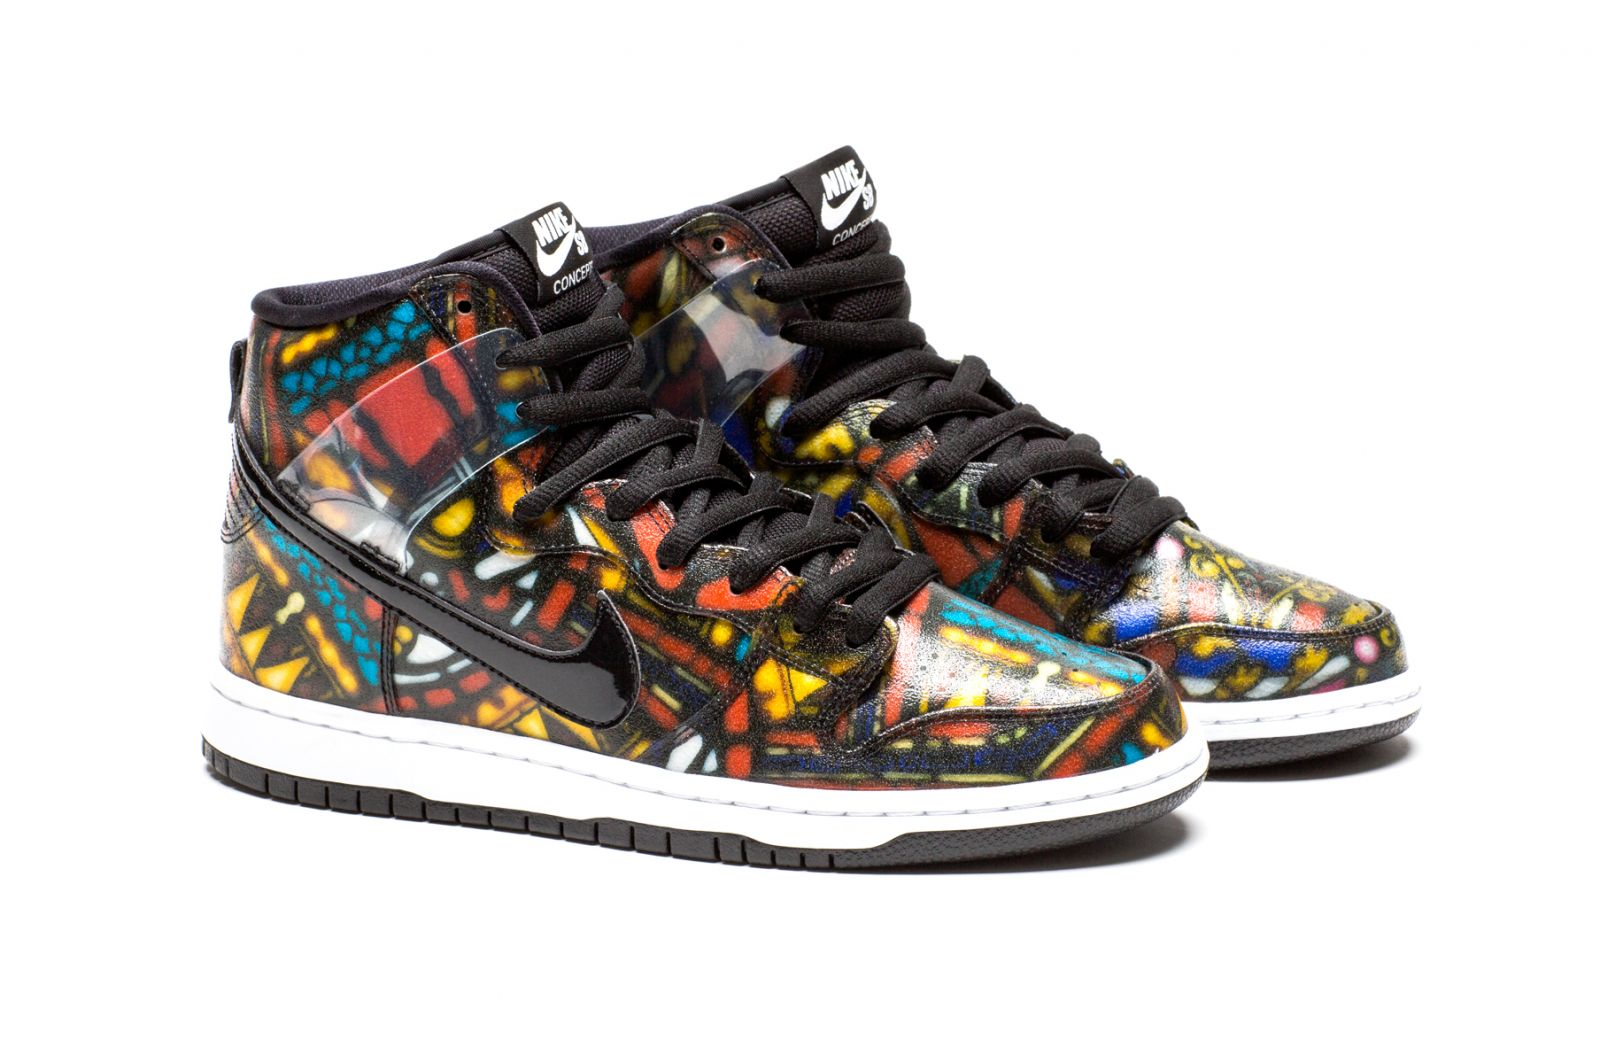 Concepts Nike SB Dunk High Grail Collection